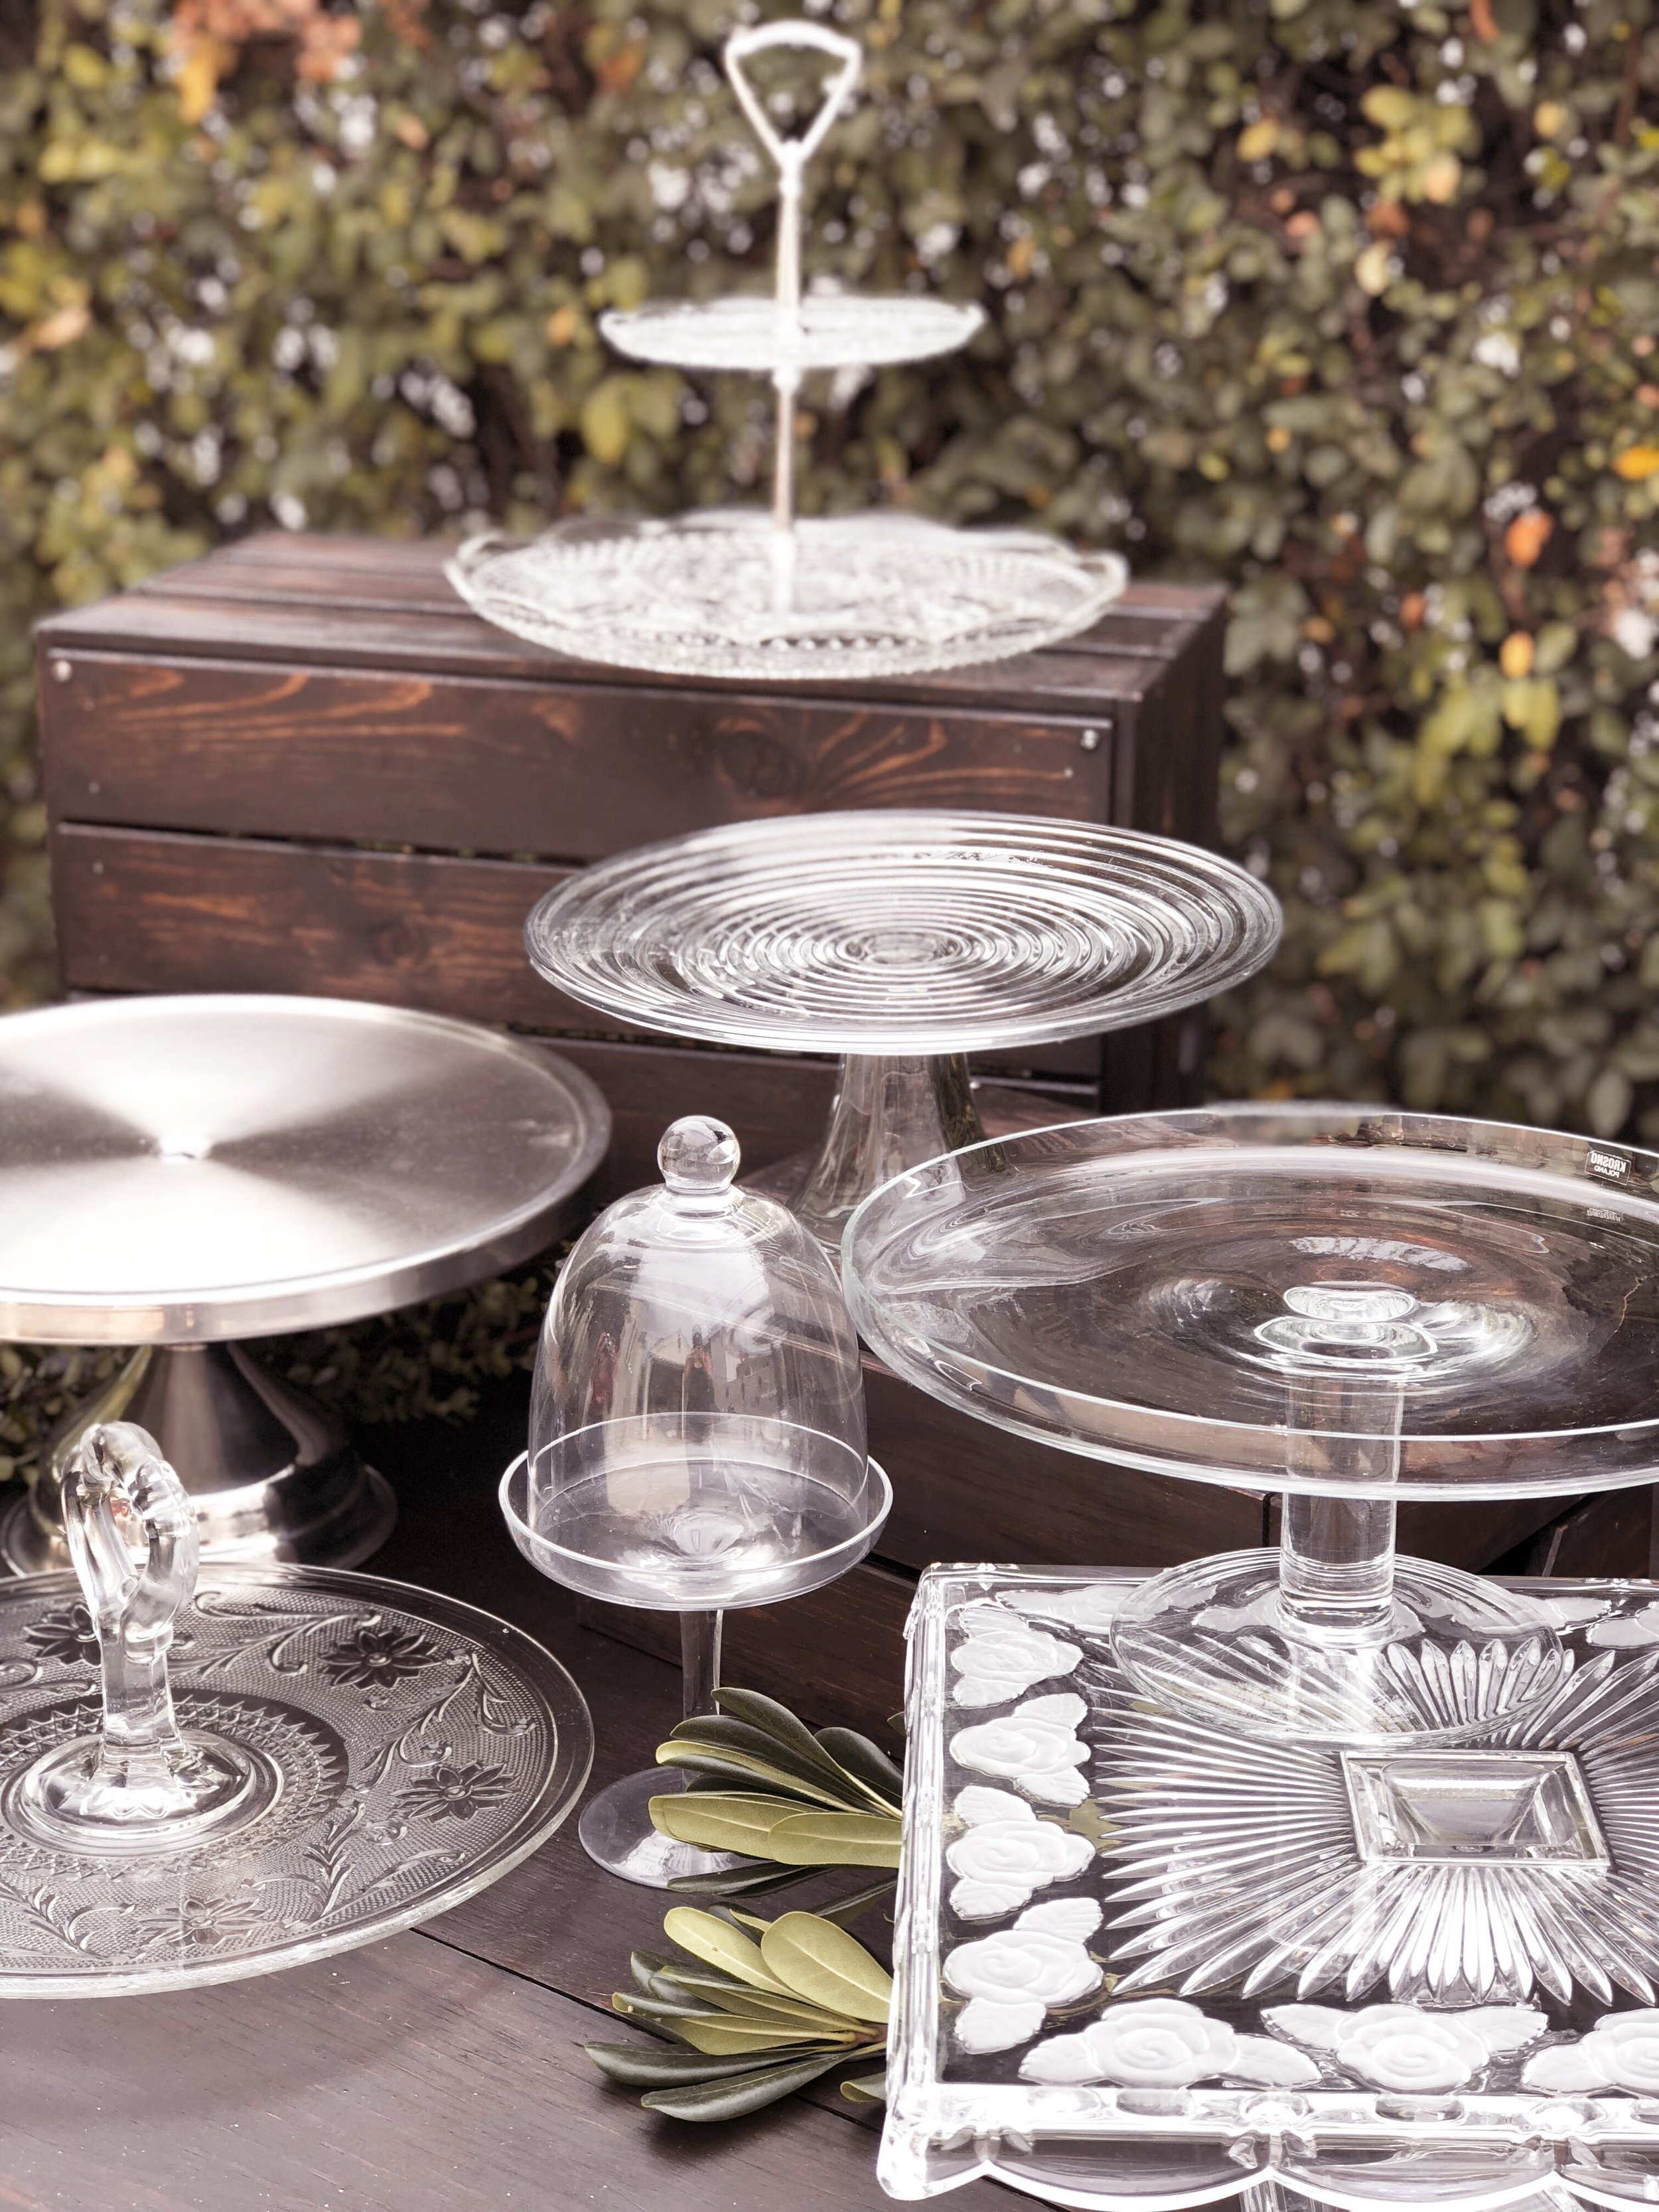 Cake plates and Platters